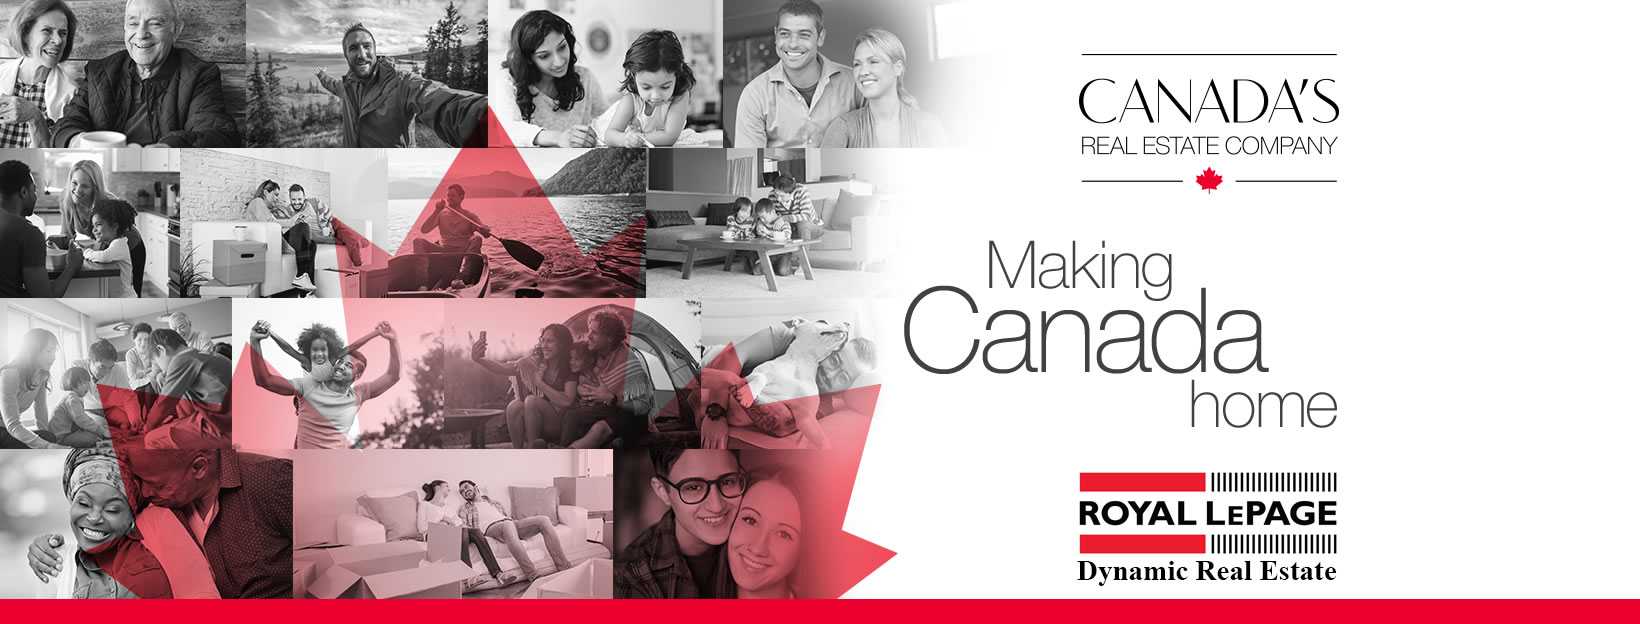 RoyalLePage-Canadas-Real-Estate-Company